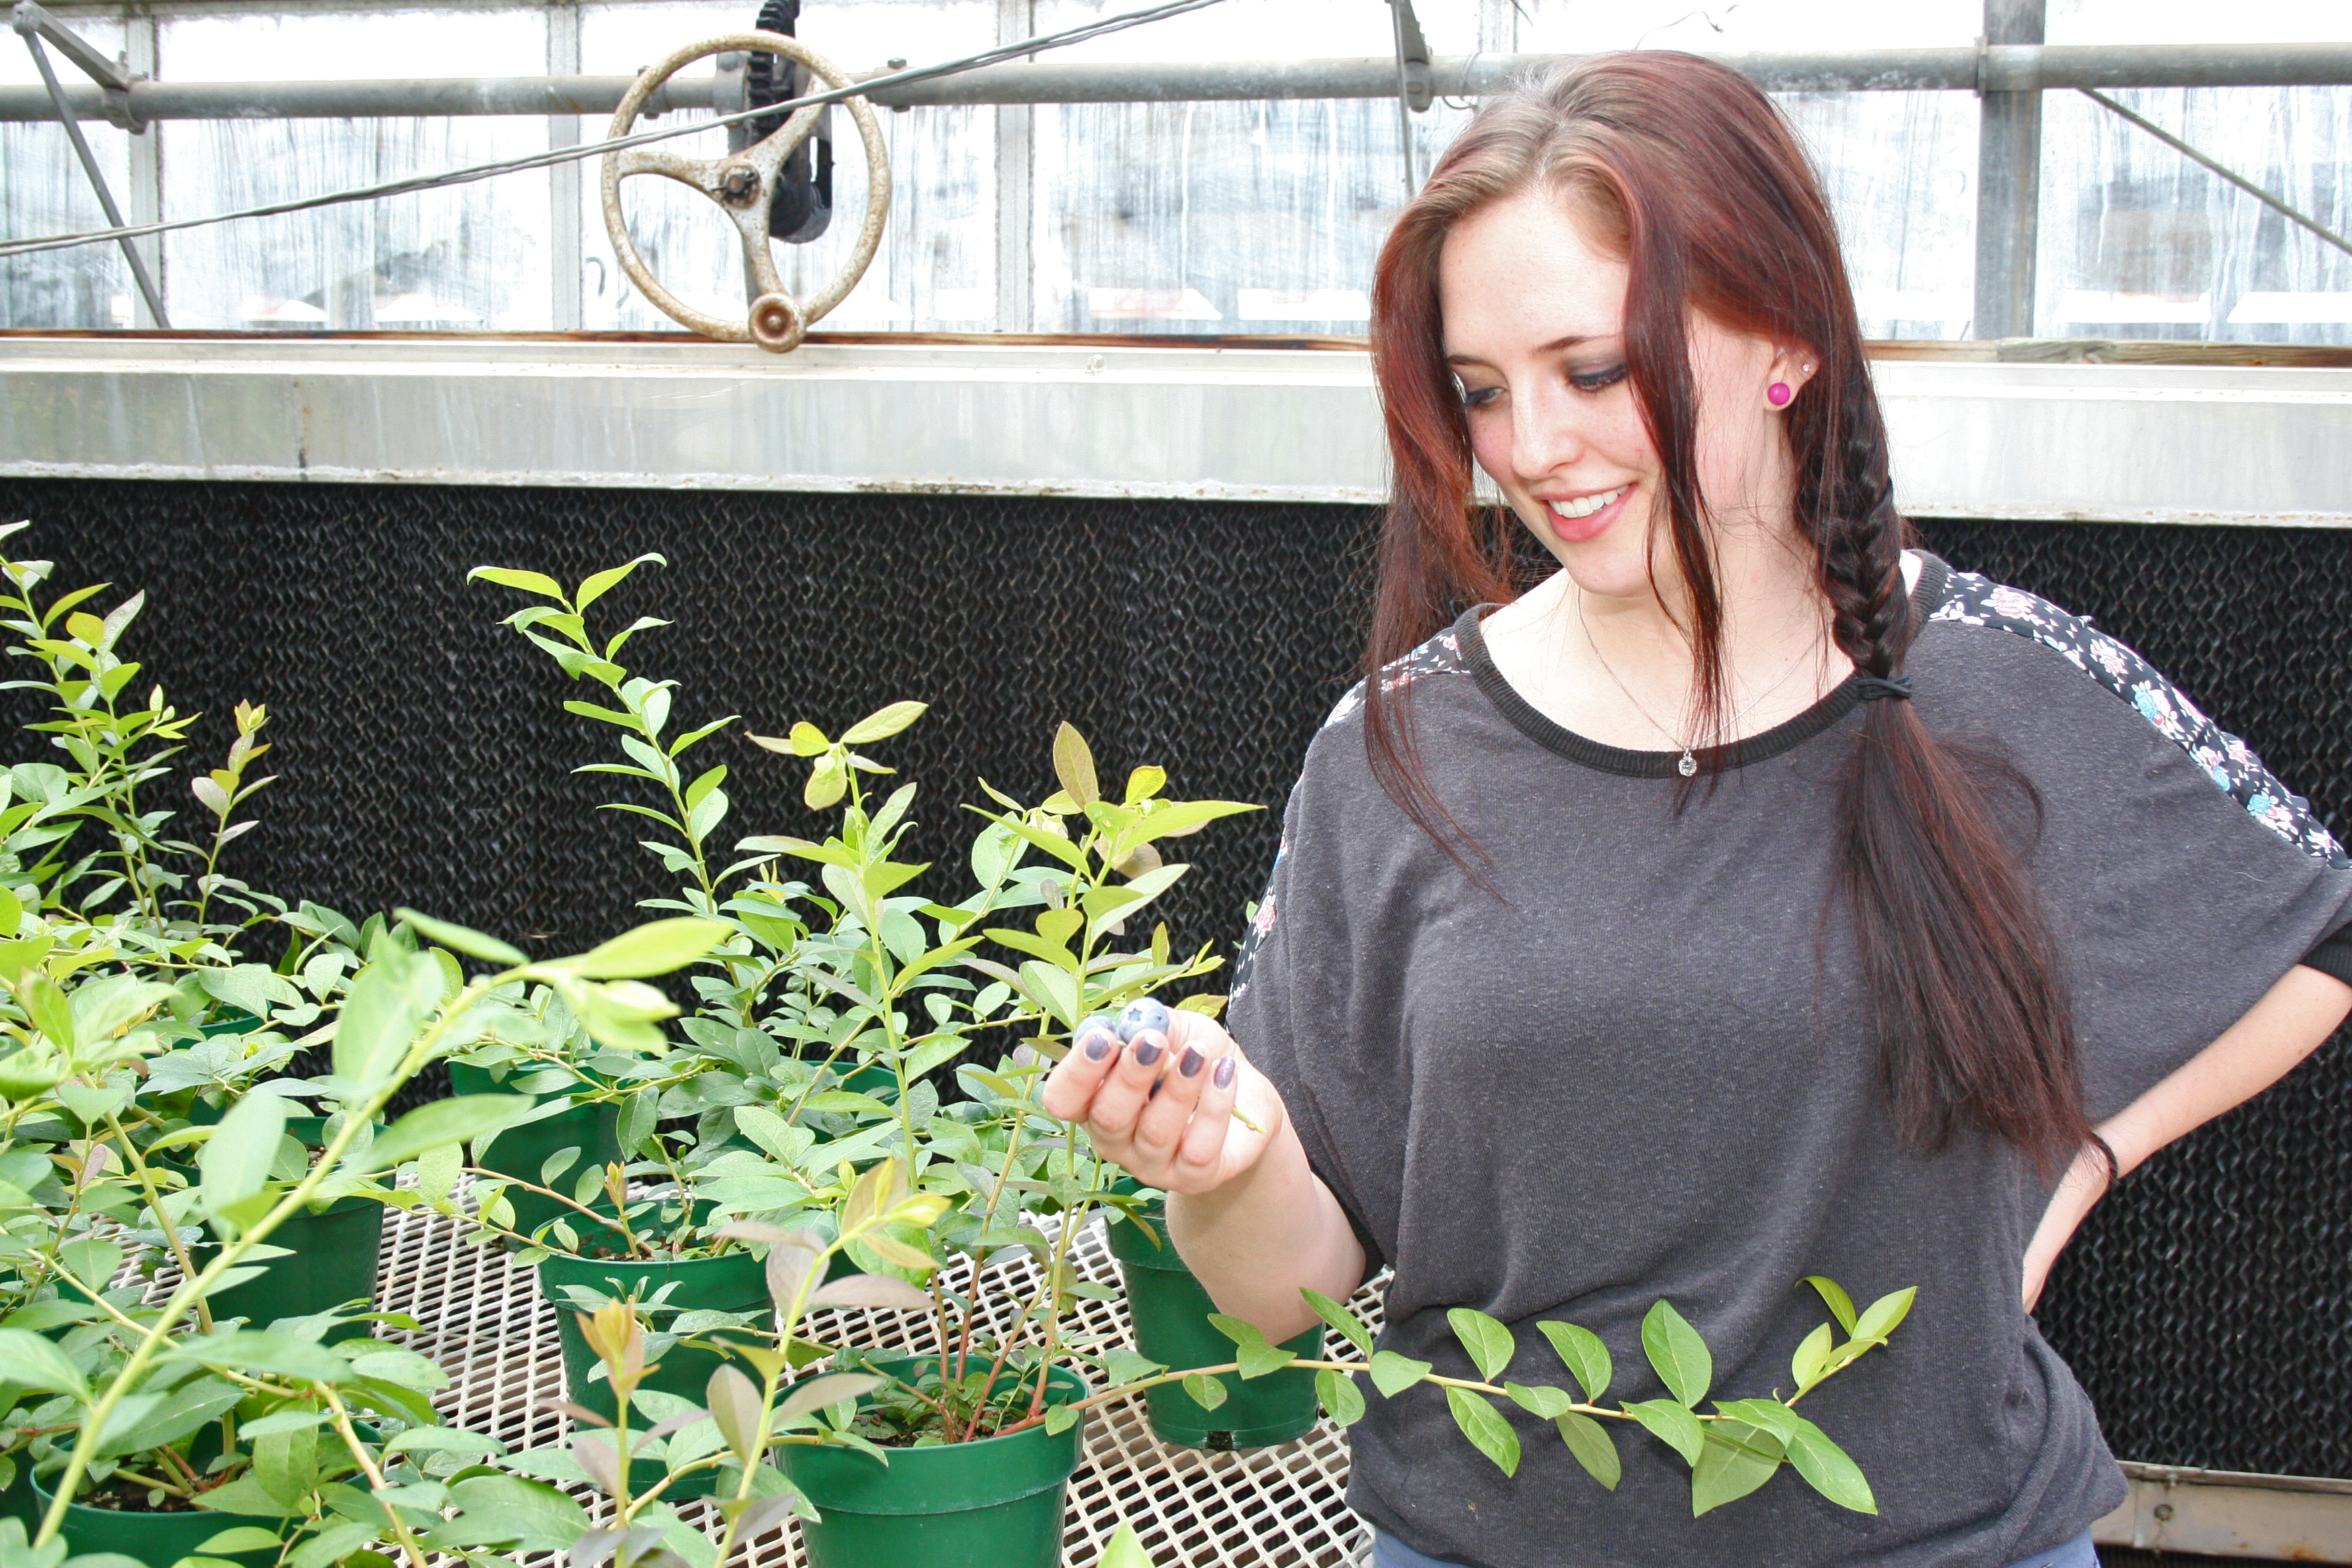 Holly Young, who graduated with a degree in agricultural communications, recently won first place in the oral presentations section of  the UGA College of Agricultural and Environmental Sciences Undergraduate Research Symposium. Her project, which she began before graduation, was to identify the genetic diversity in Exobasidium, a species of fungus that attacks blueberries.